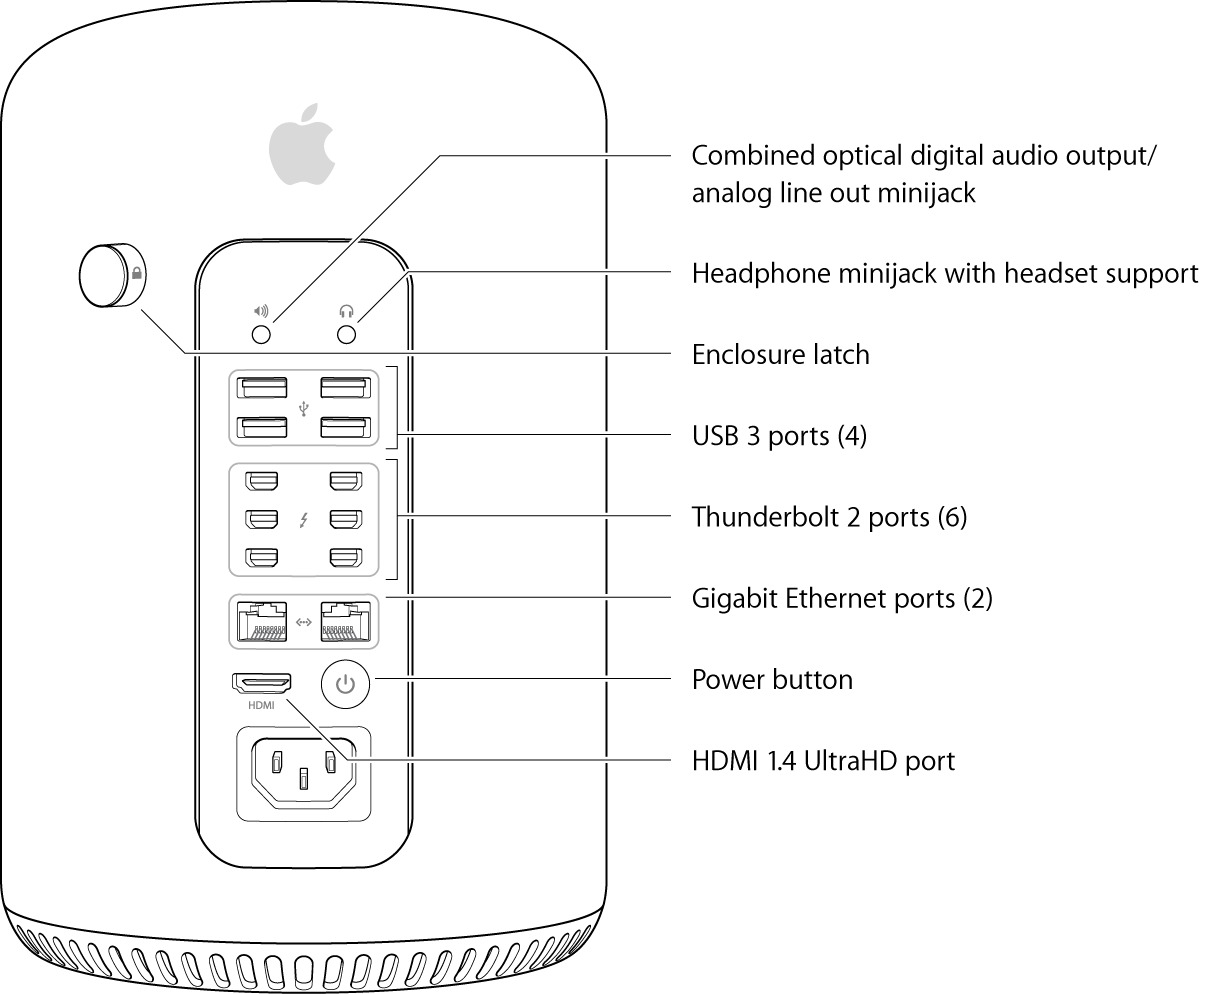 Mac Pro (Late 2013): External features, ports, and connectors